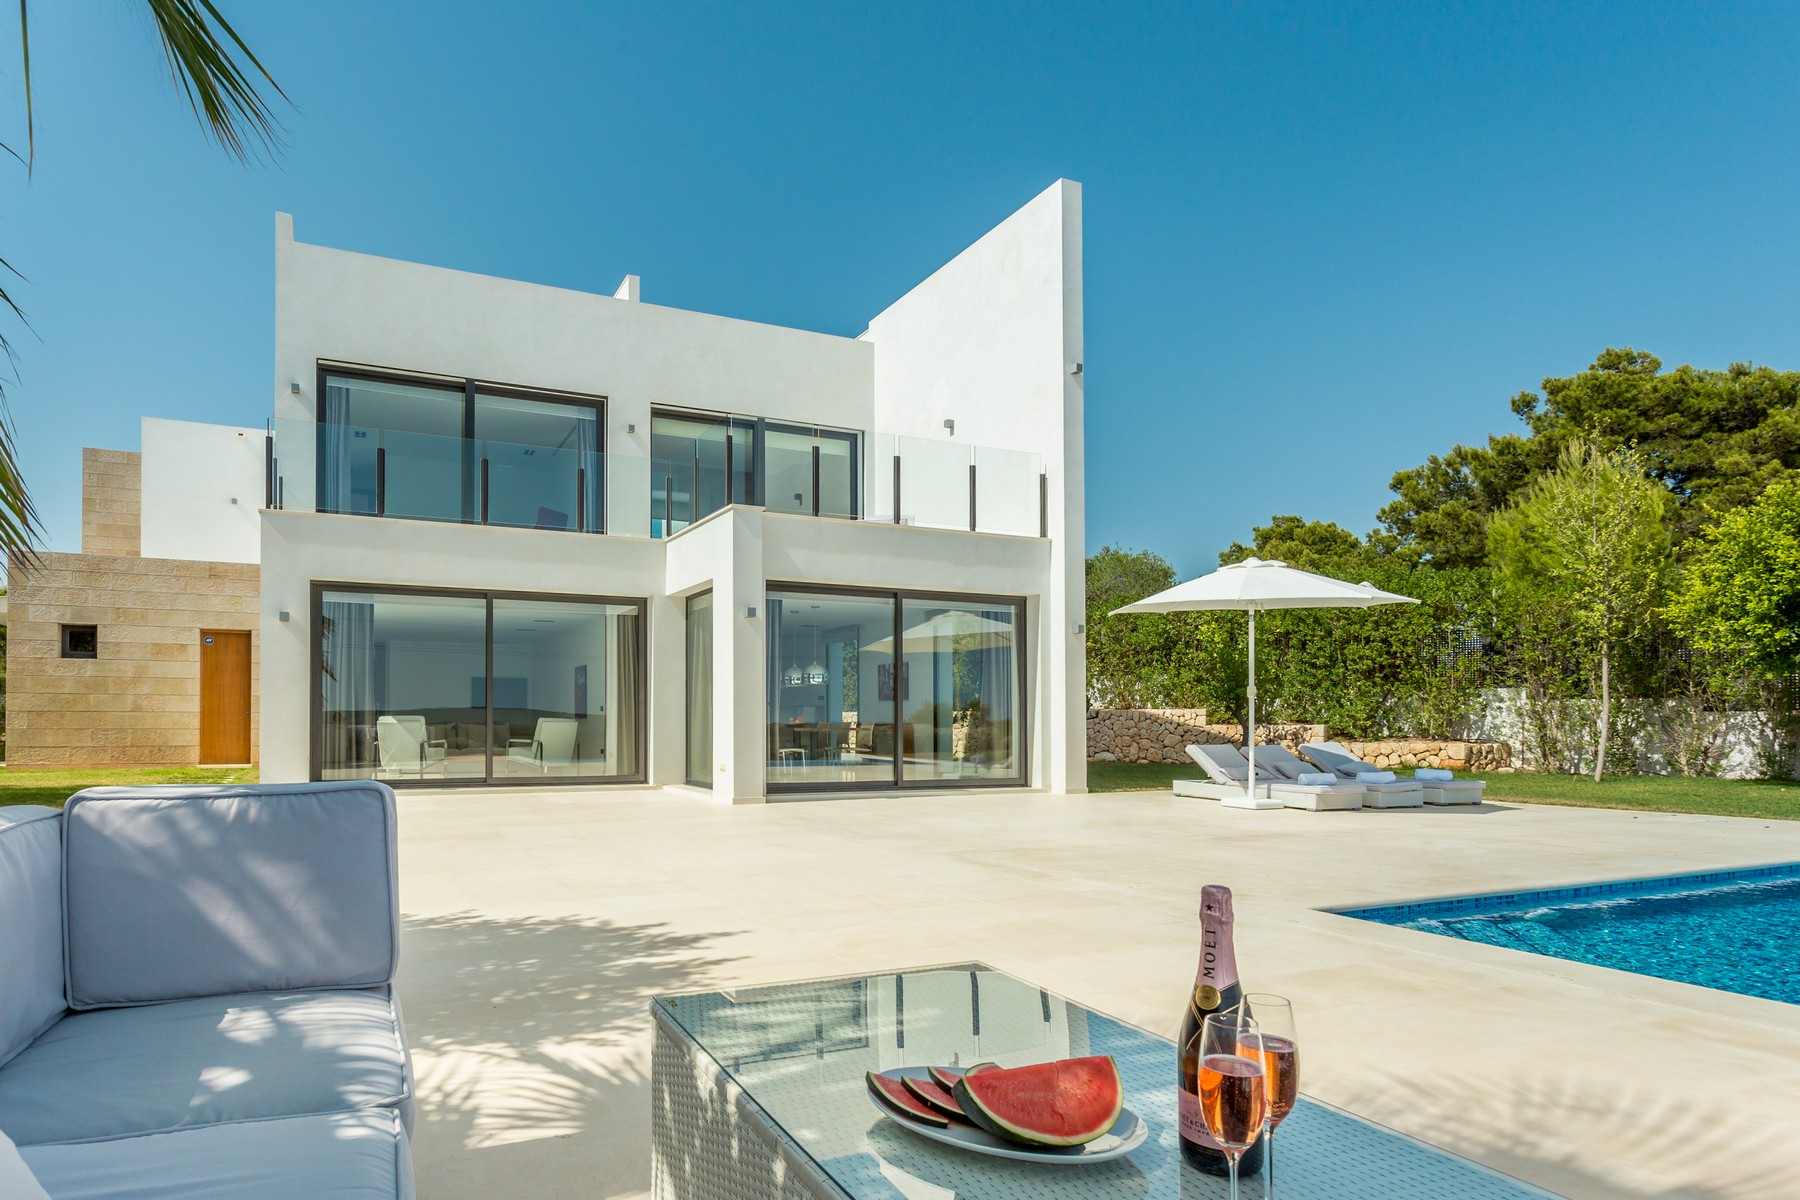 一戸建て のために 売買 アット Modern villa with panoramic views Carrer Guillem de Montcada Santa Ponsa, マヨルカ, 07180 スペイン